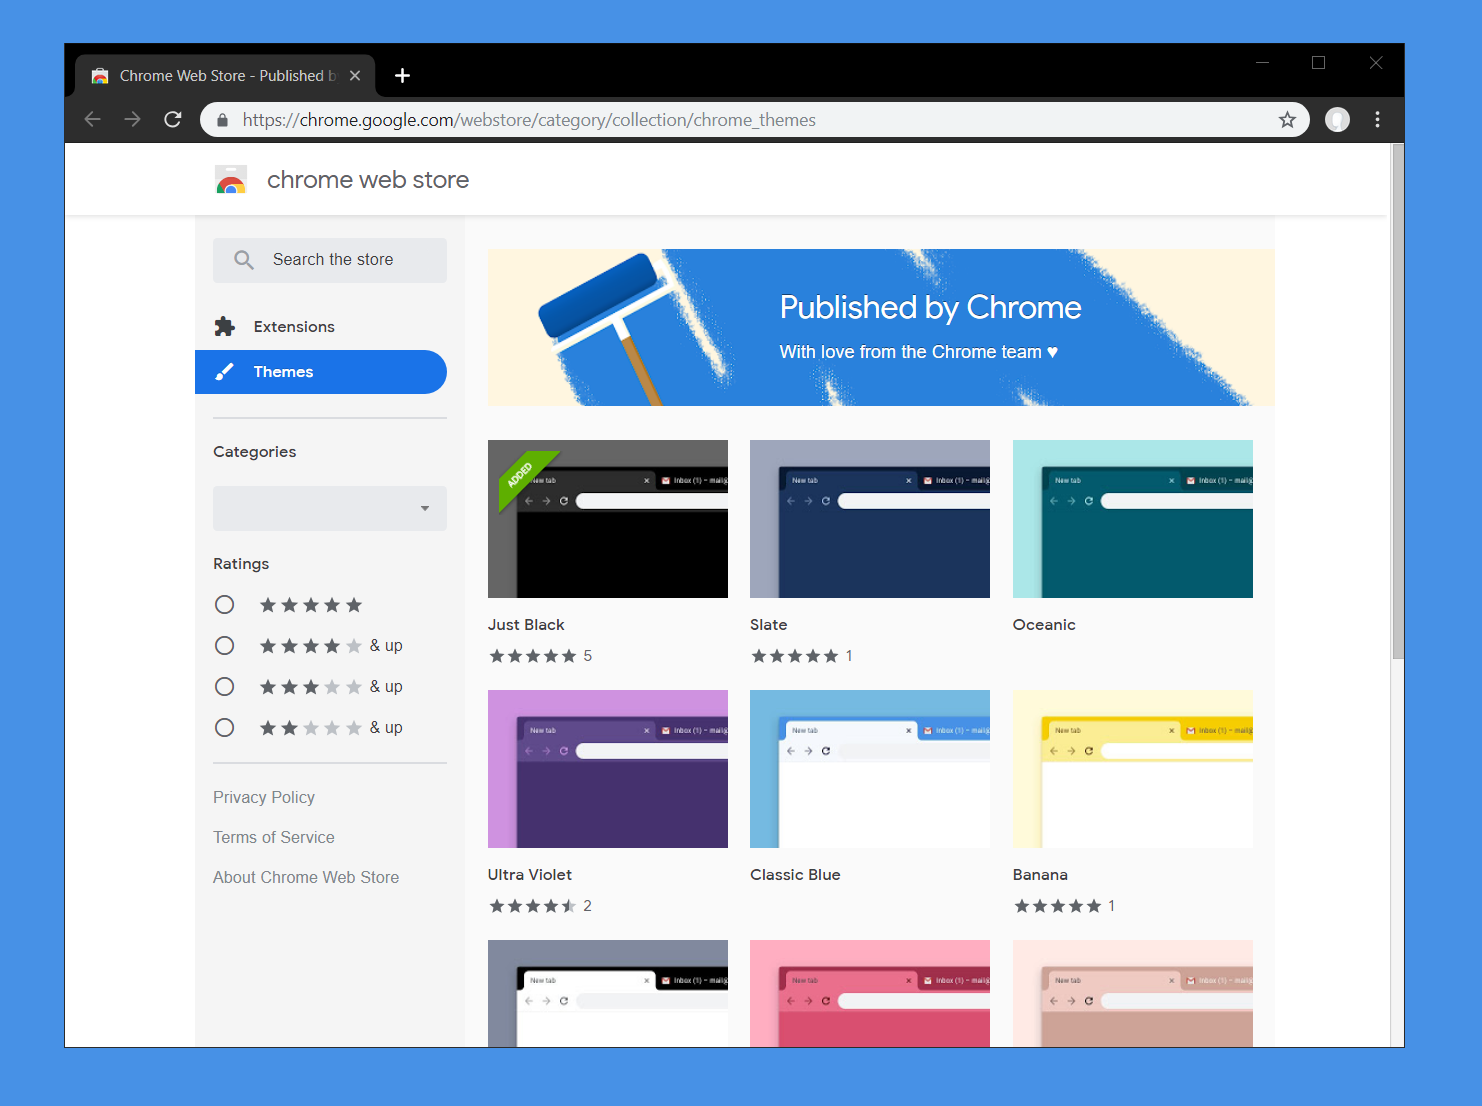 Google brings out new free themes for Chrome browsers / Digital